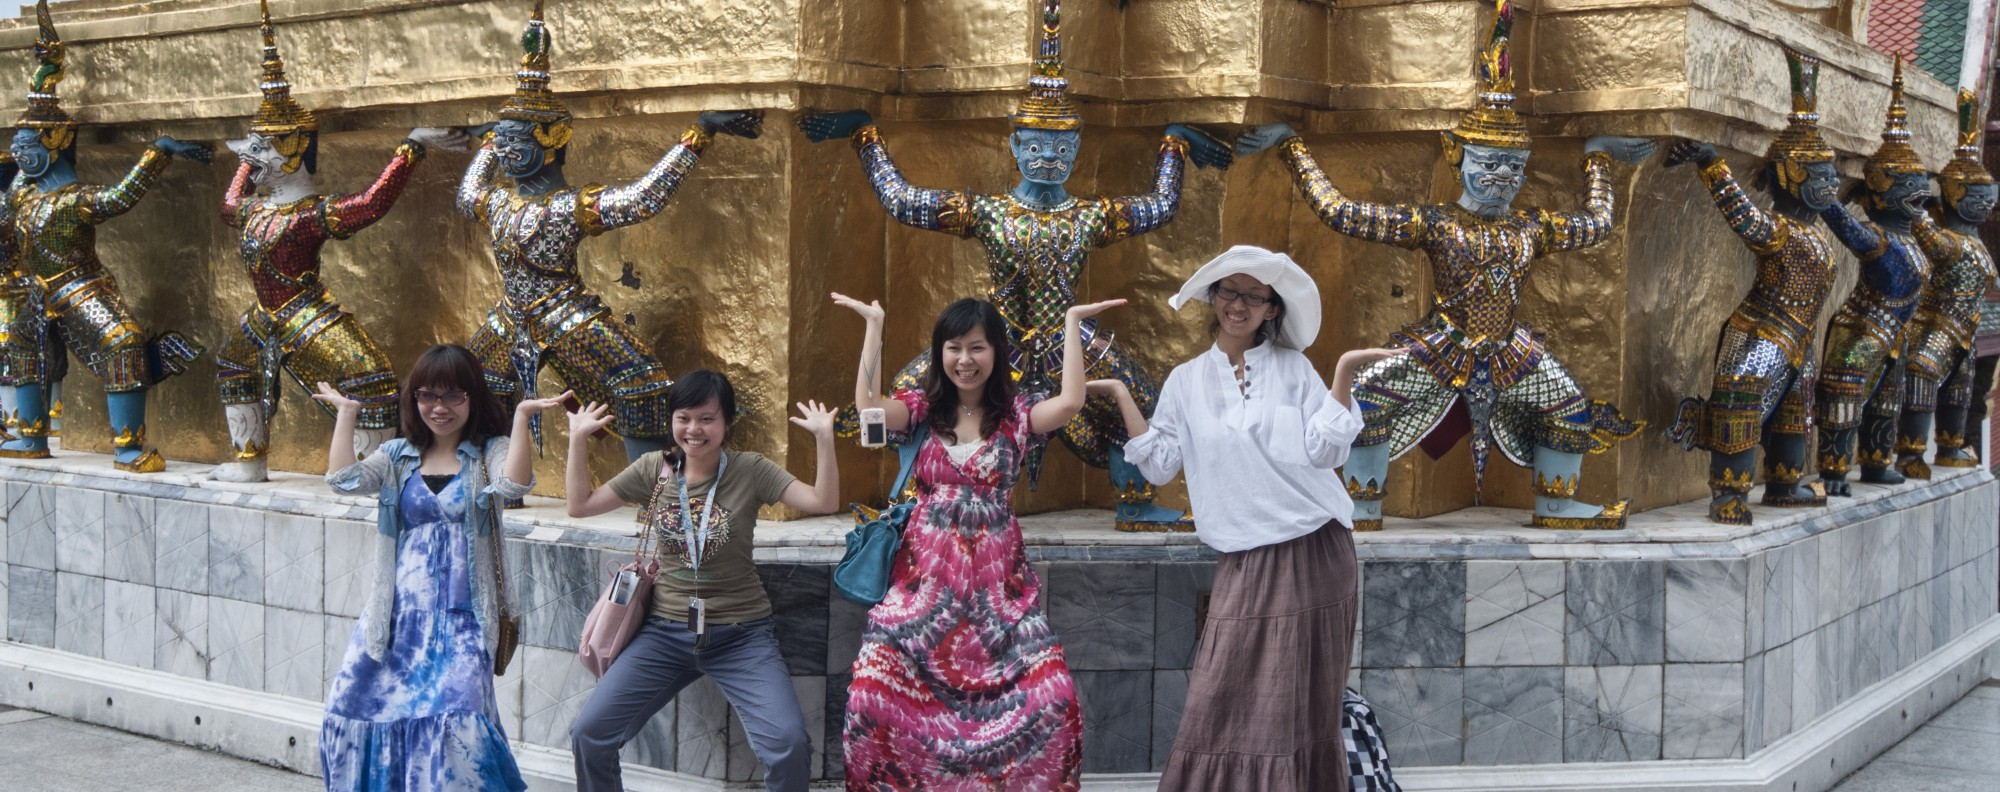 Chinese tourists pose in front of Bangkok's Emerald Buddha Temple.